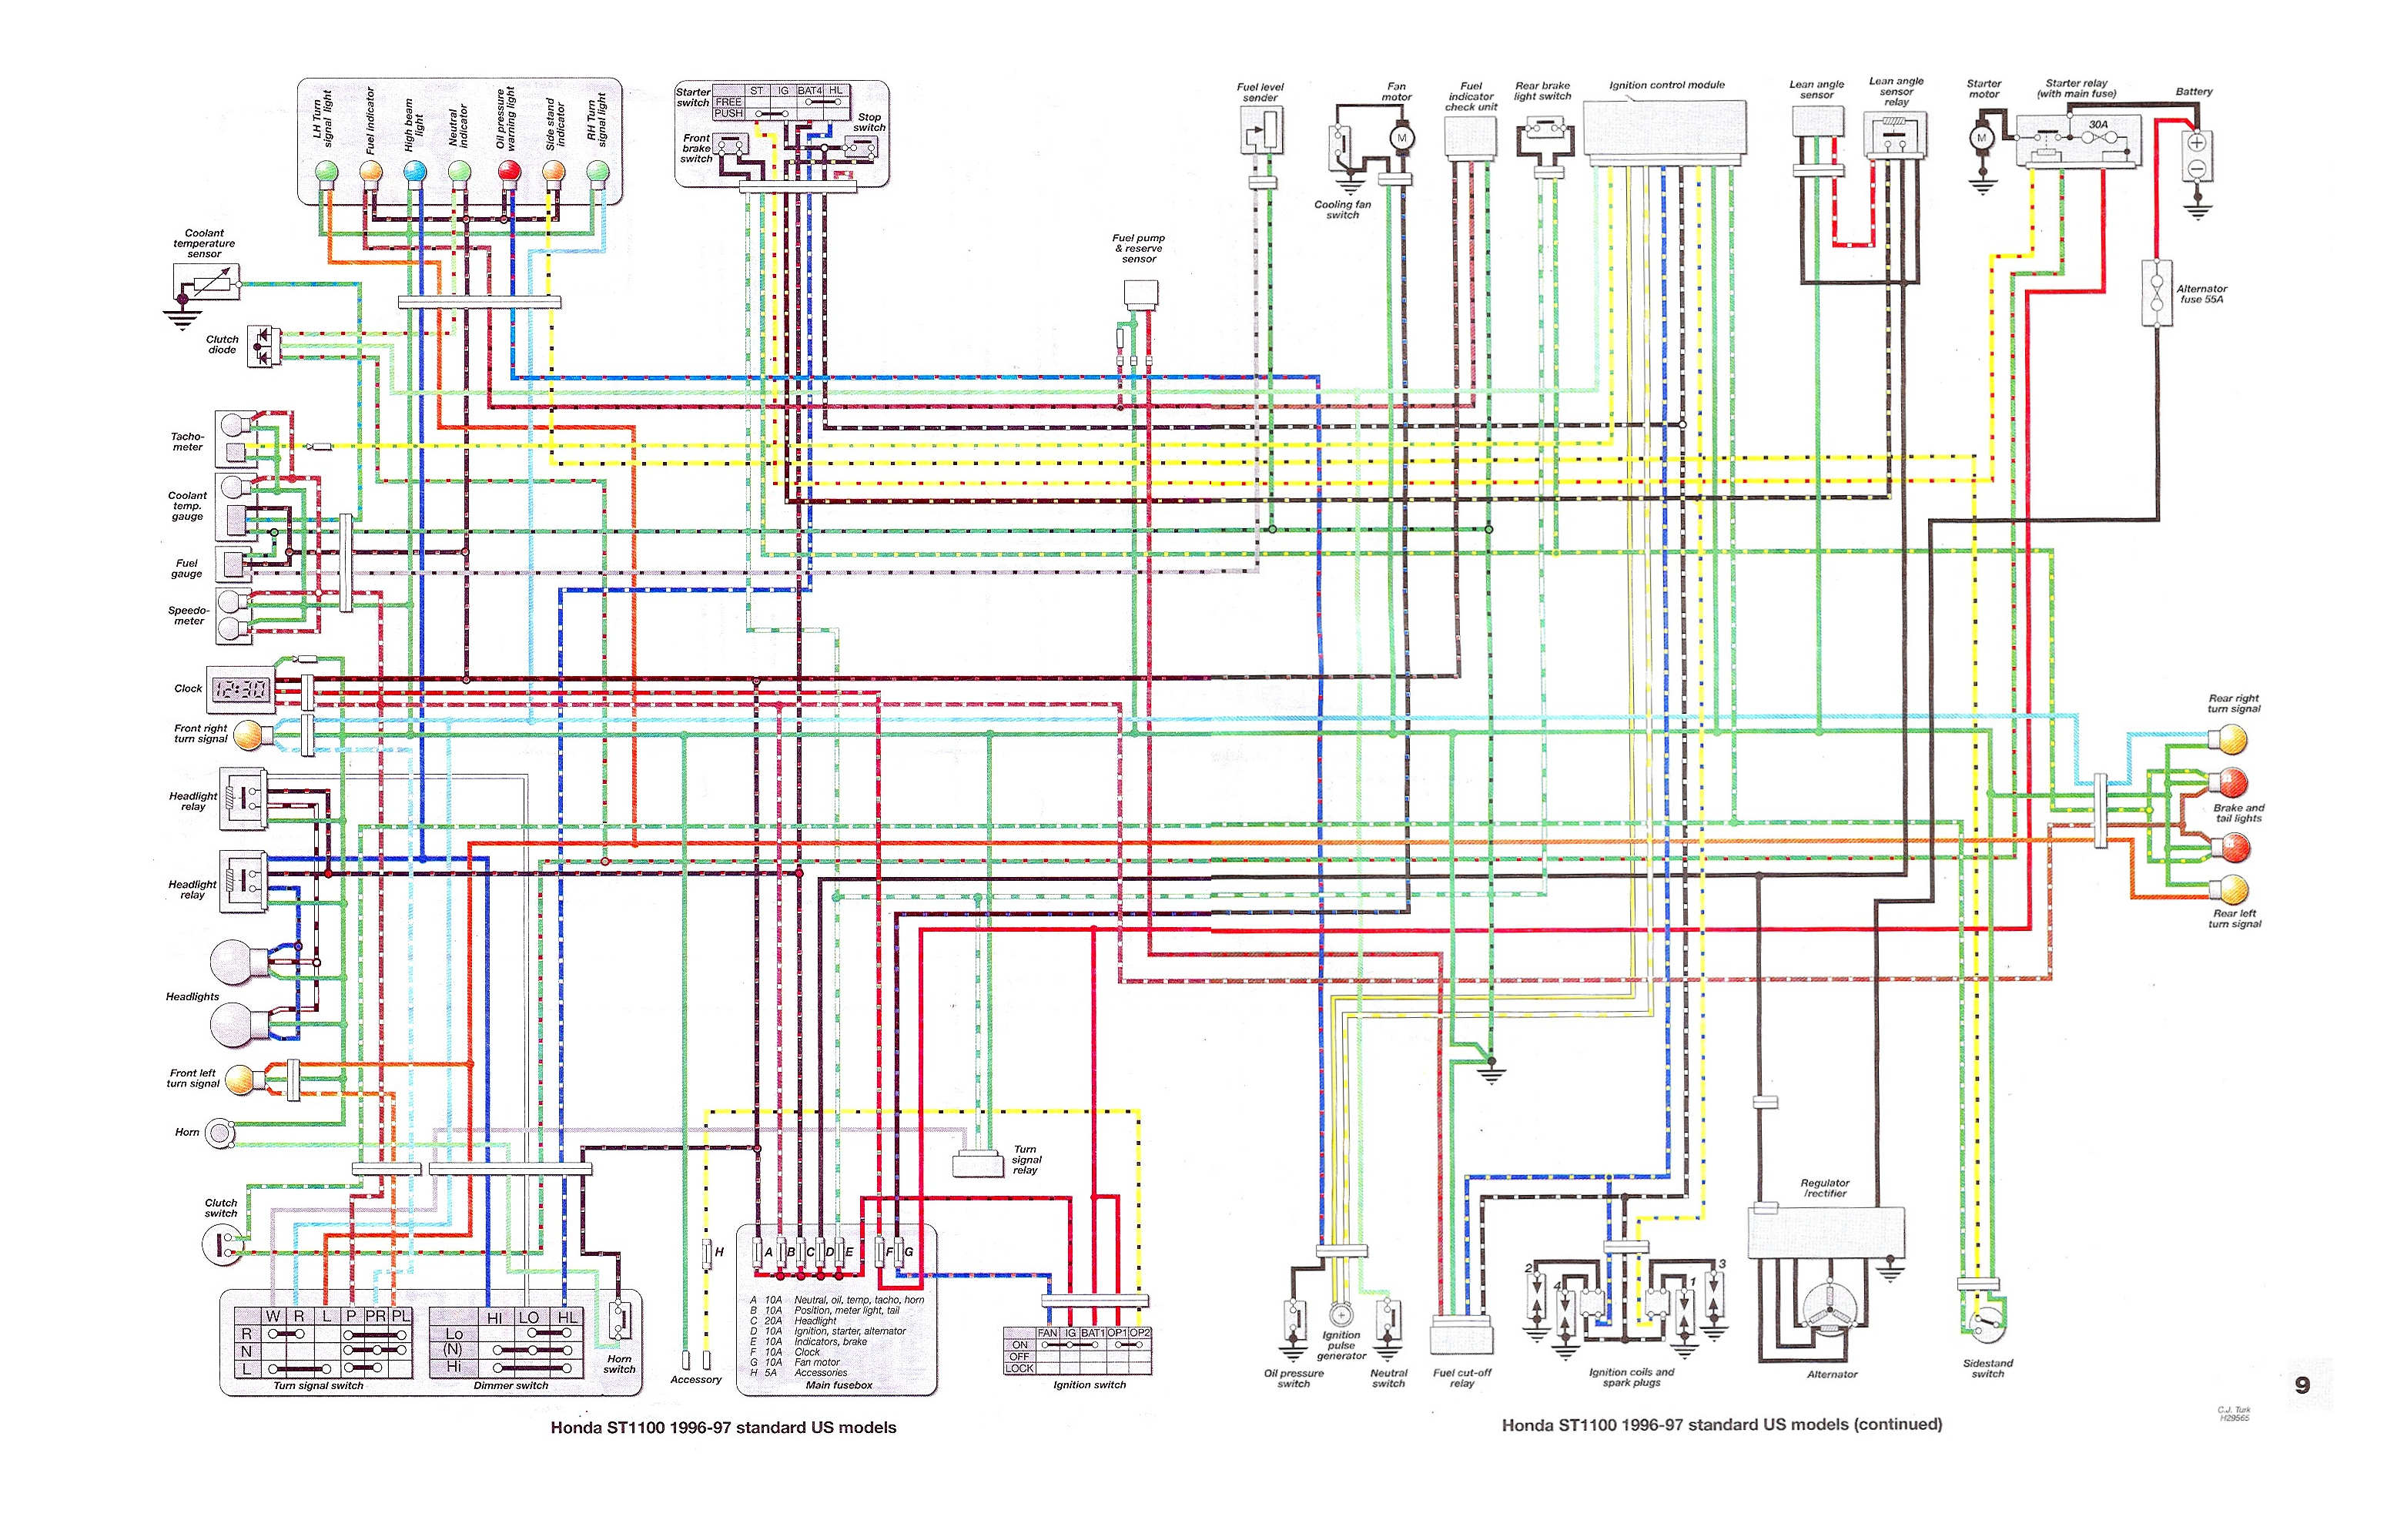 Marvelous 2008 Fxdl Wiring Diagram Wiring Library Wiring Cloud Onicaxeromohammedshrineorg